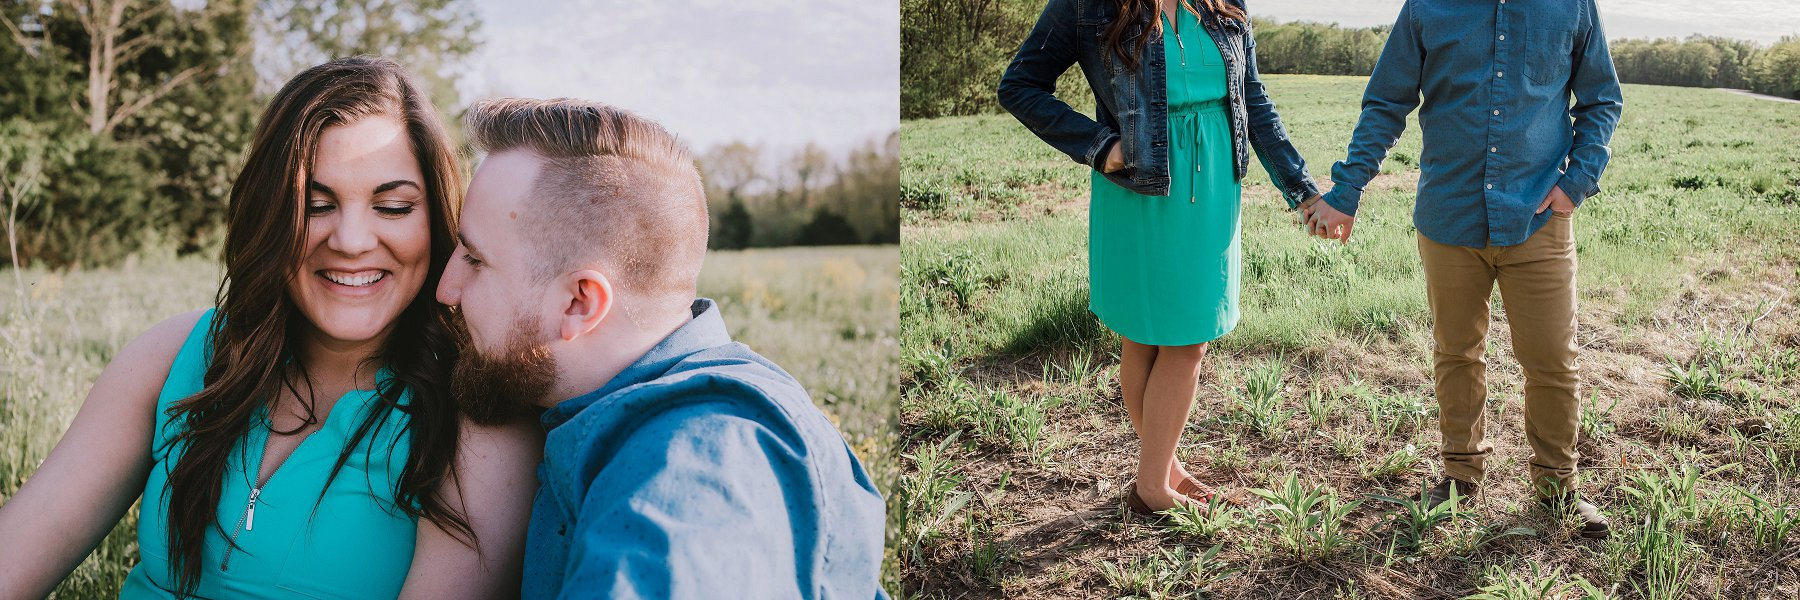 Spring Engagement Photography in Kansas City by Merry Ohler 4